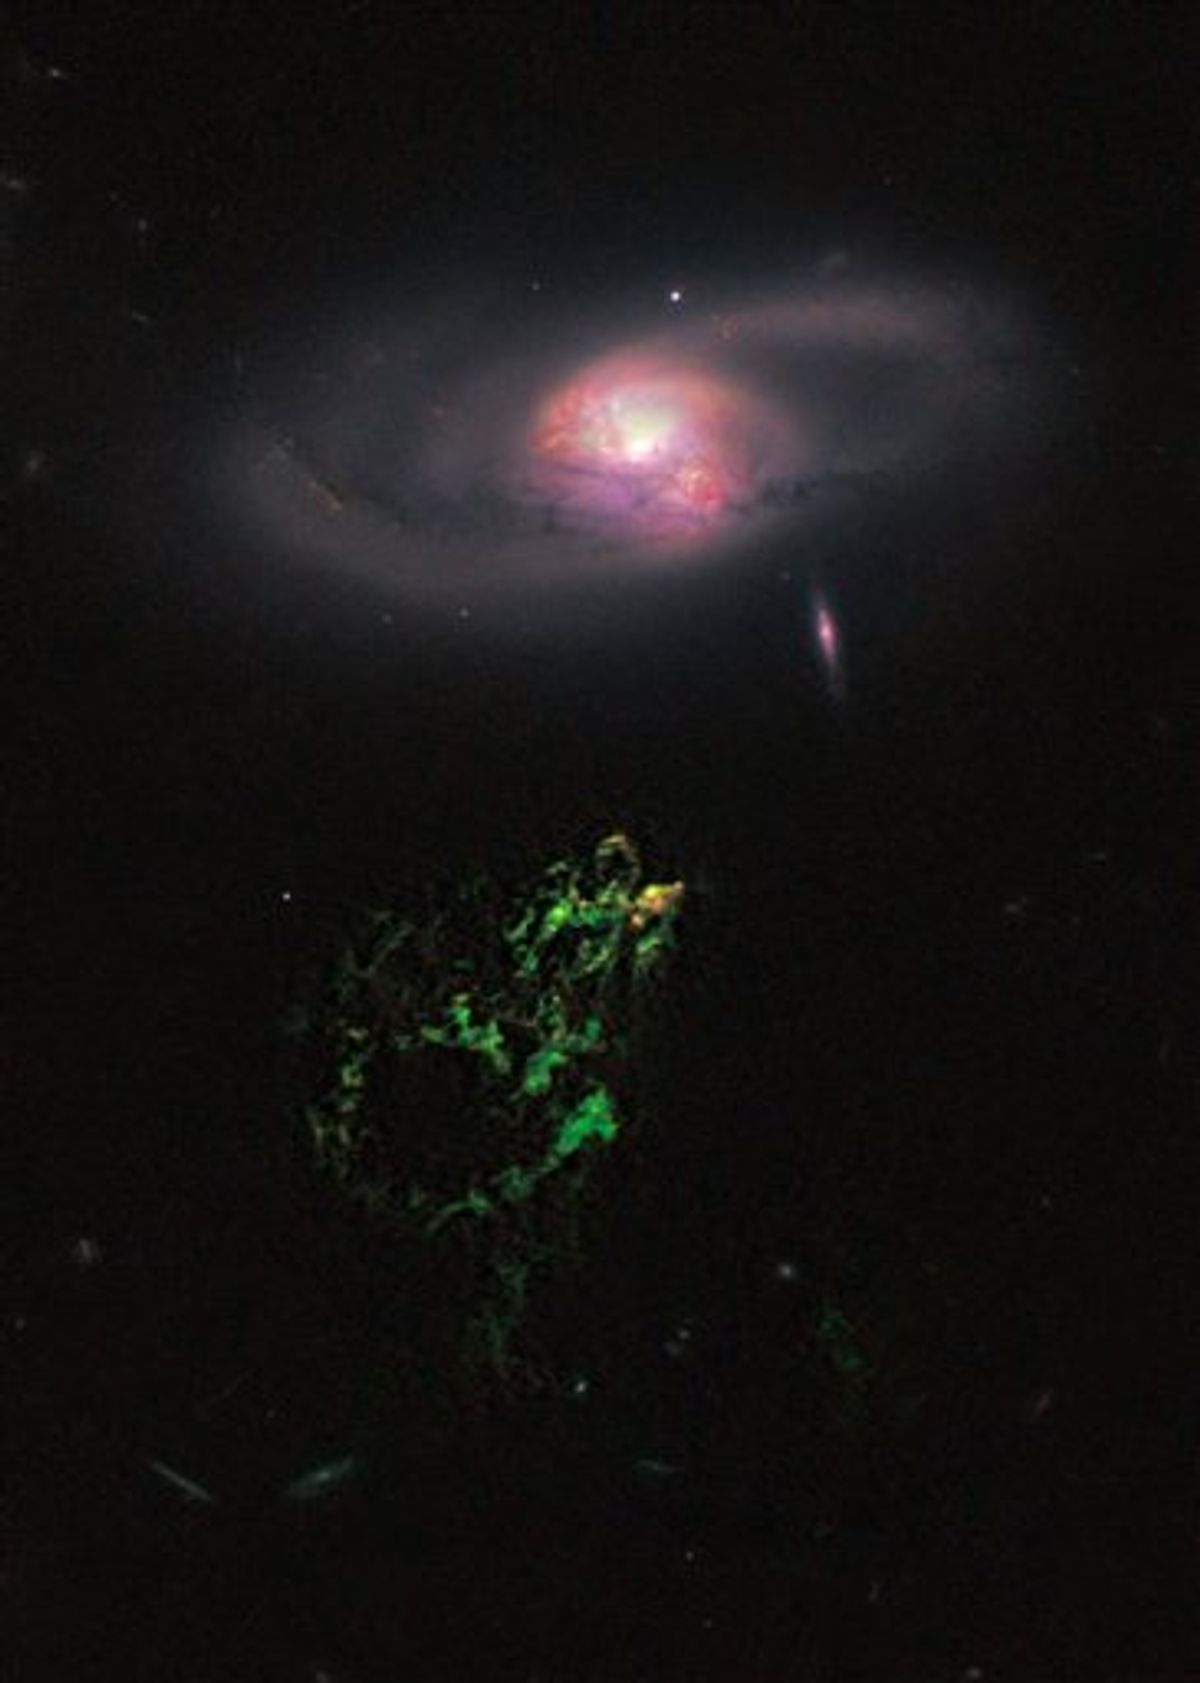 This handout photo provided by NASA, taken April 12, 2010 by the Hubble Space Telescope, shows an unusual, ghostly green blob of gas appears to float near a normal-looking spiral galaxy. NASA released Monday the Hubble Space Telescope's first picture of the mysterious giant glowing green blob of gas called Hanny's Voorwerp.  The blob is the size of our Milky Way galaxy and is 650 million light years away. Each light year is about 6 trillion miles. The blob was discovered in 2007 by Dutch school teacher Hanny van Arkel. (AP Photo/Hubble Space Telescope Science Institute)  (AP)